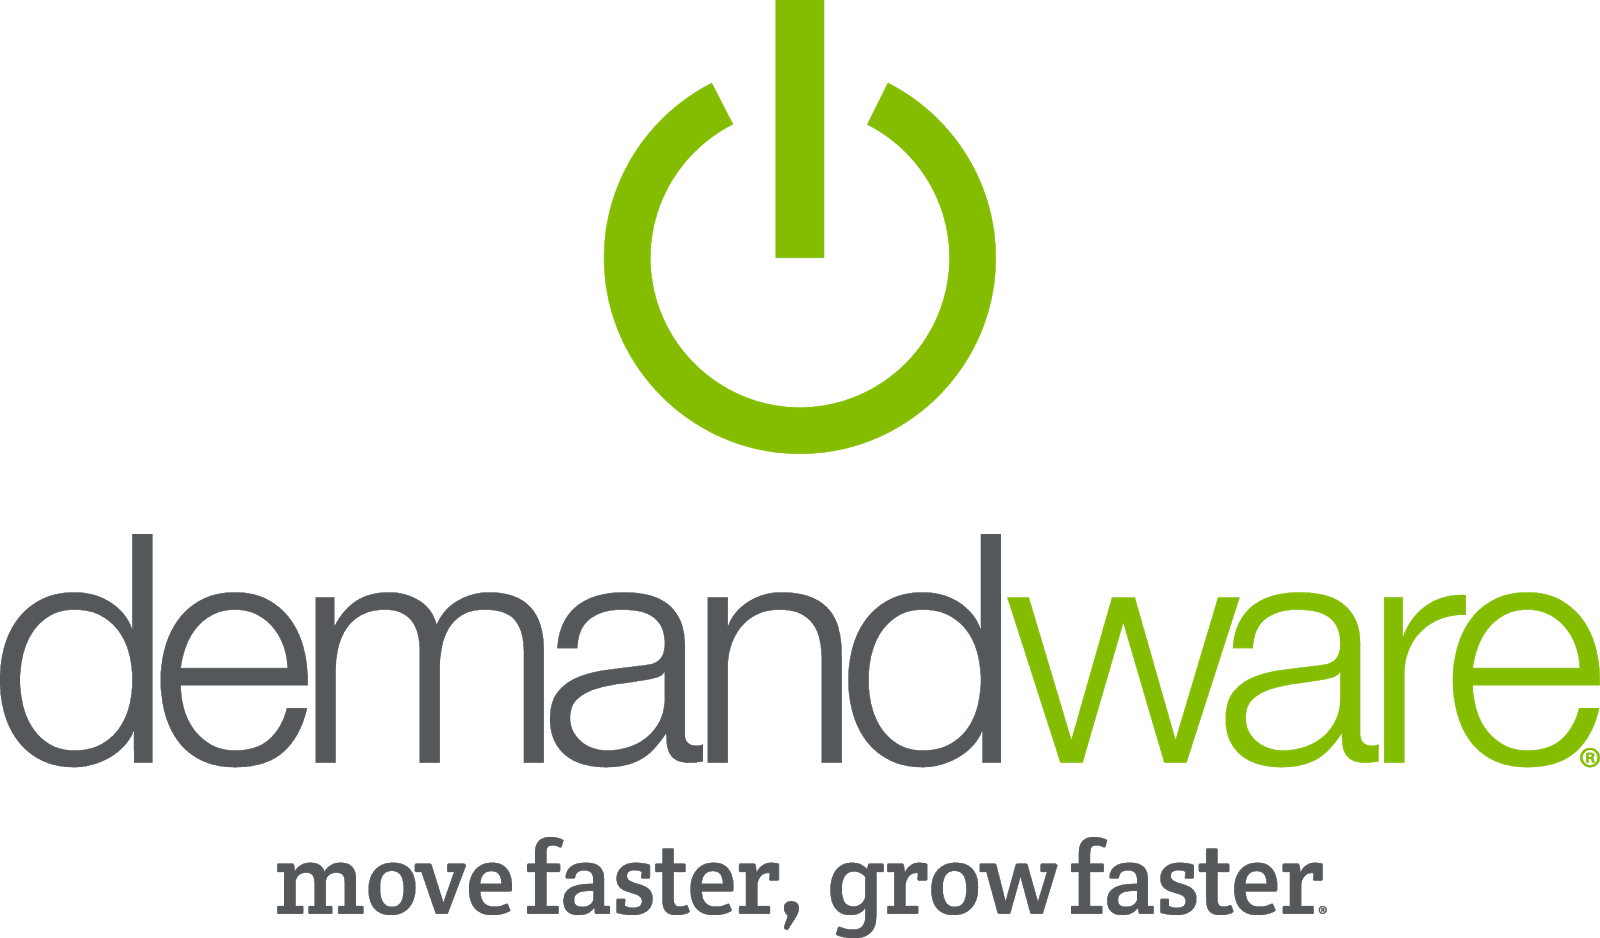 Demandware provides online merchants with features for seamless businesses across all channels